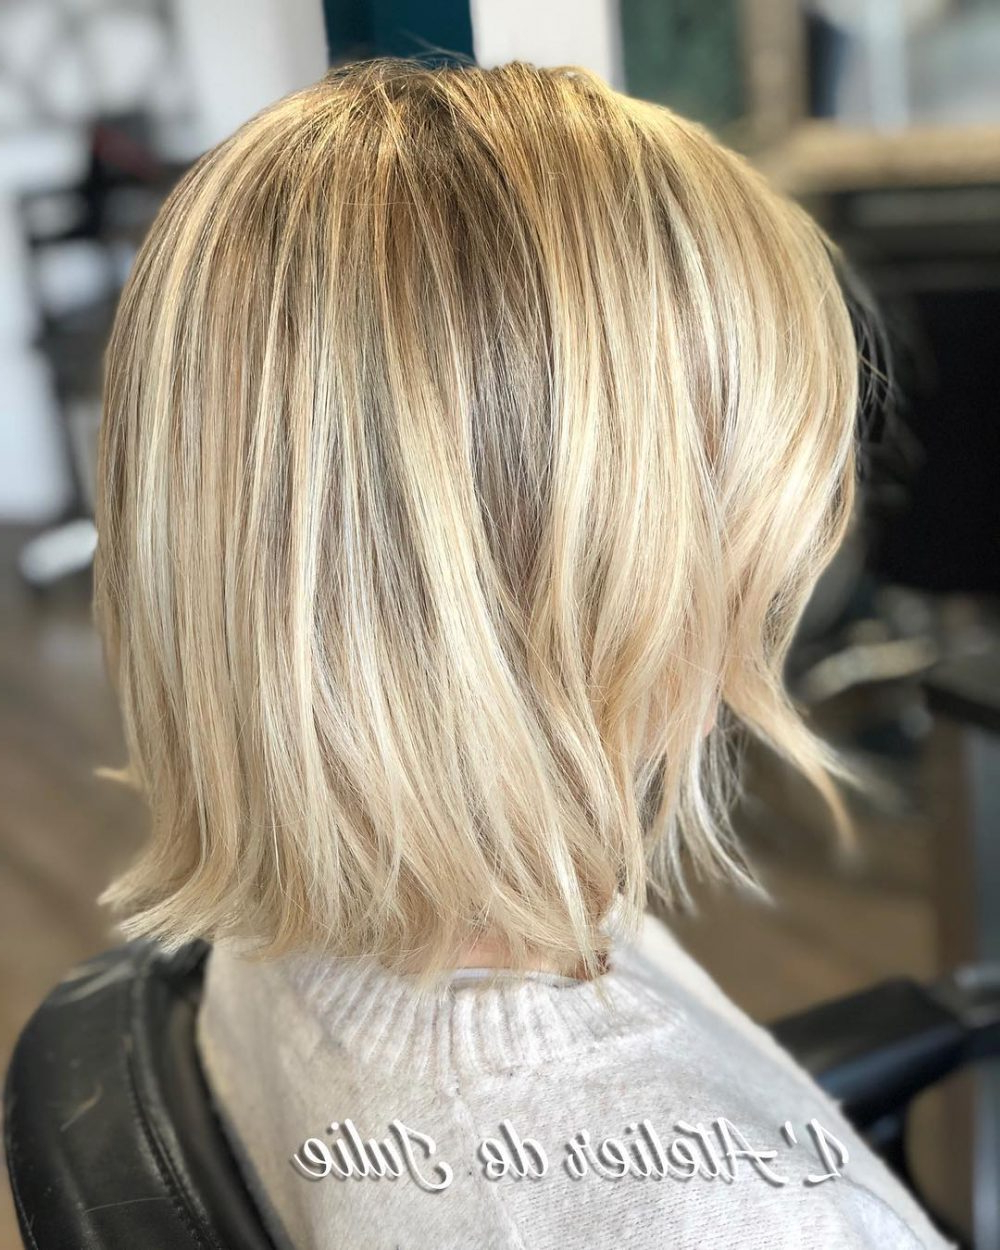 34 Perfect Short Haircuts And Hairstyles For Thin Hair (2018) Throughout Layered Bob Haircuts For Fine Hair (View 13 of 20)